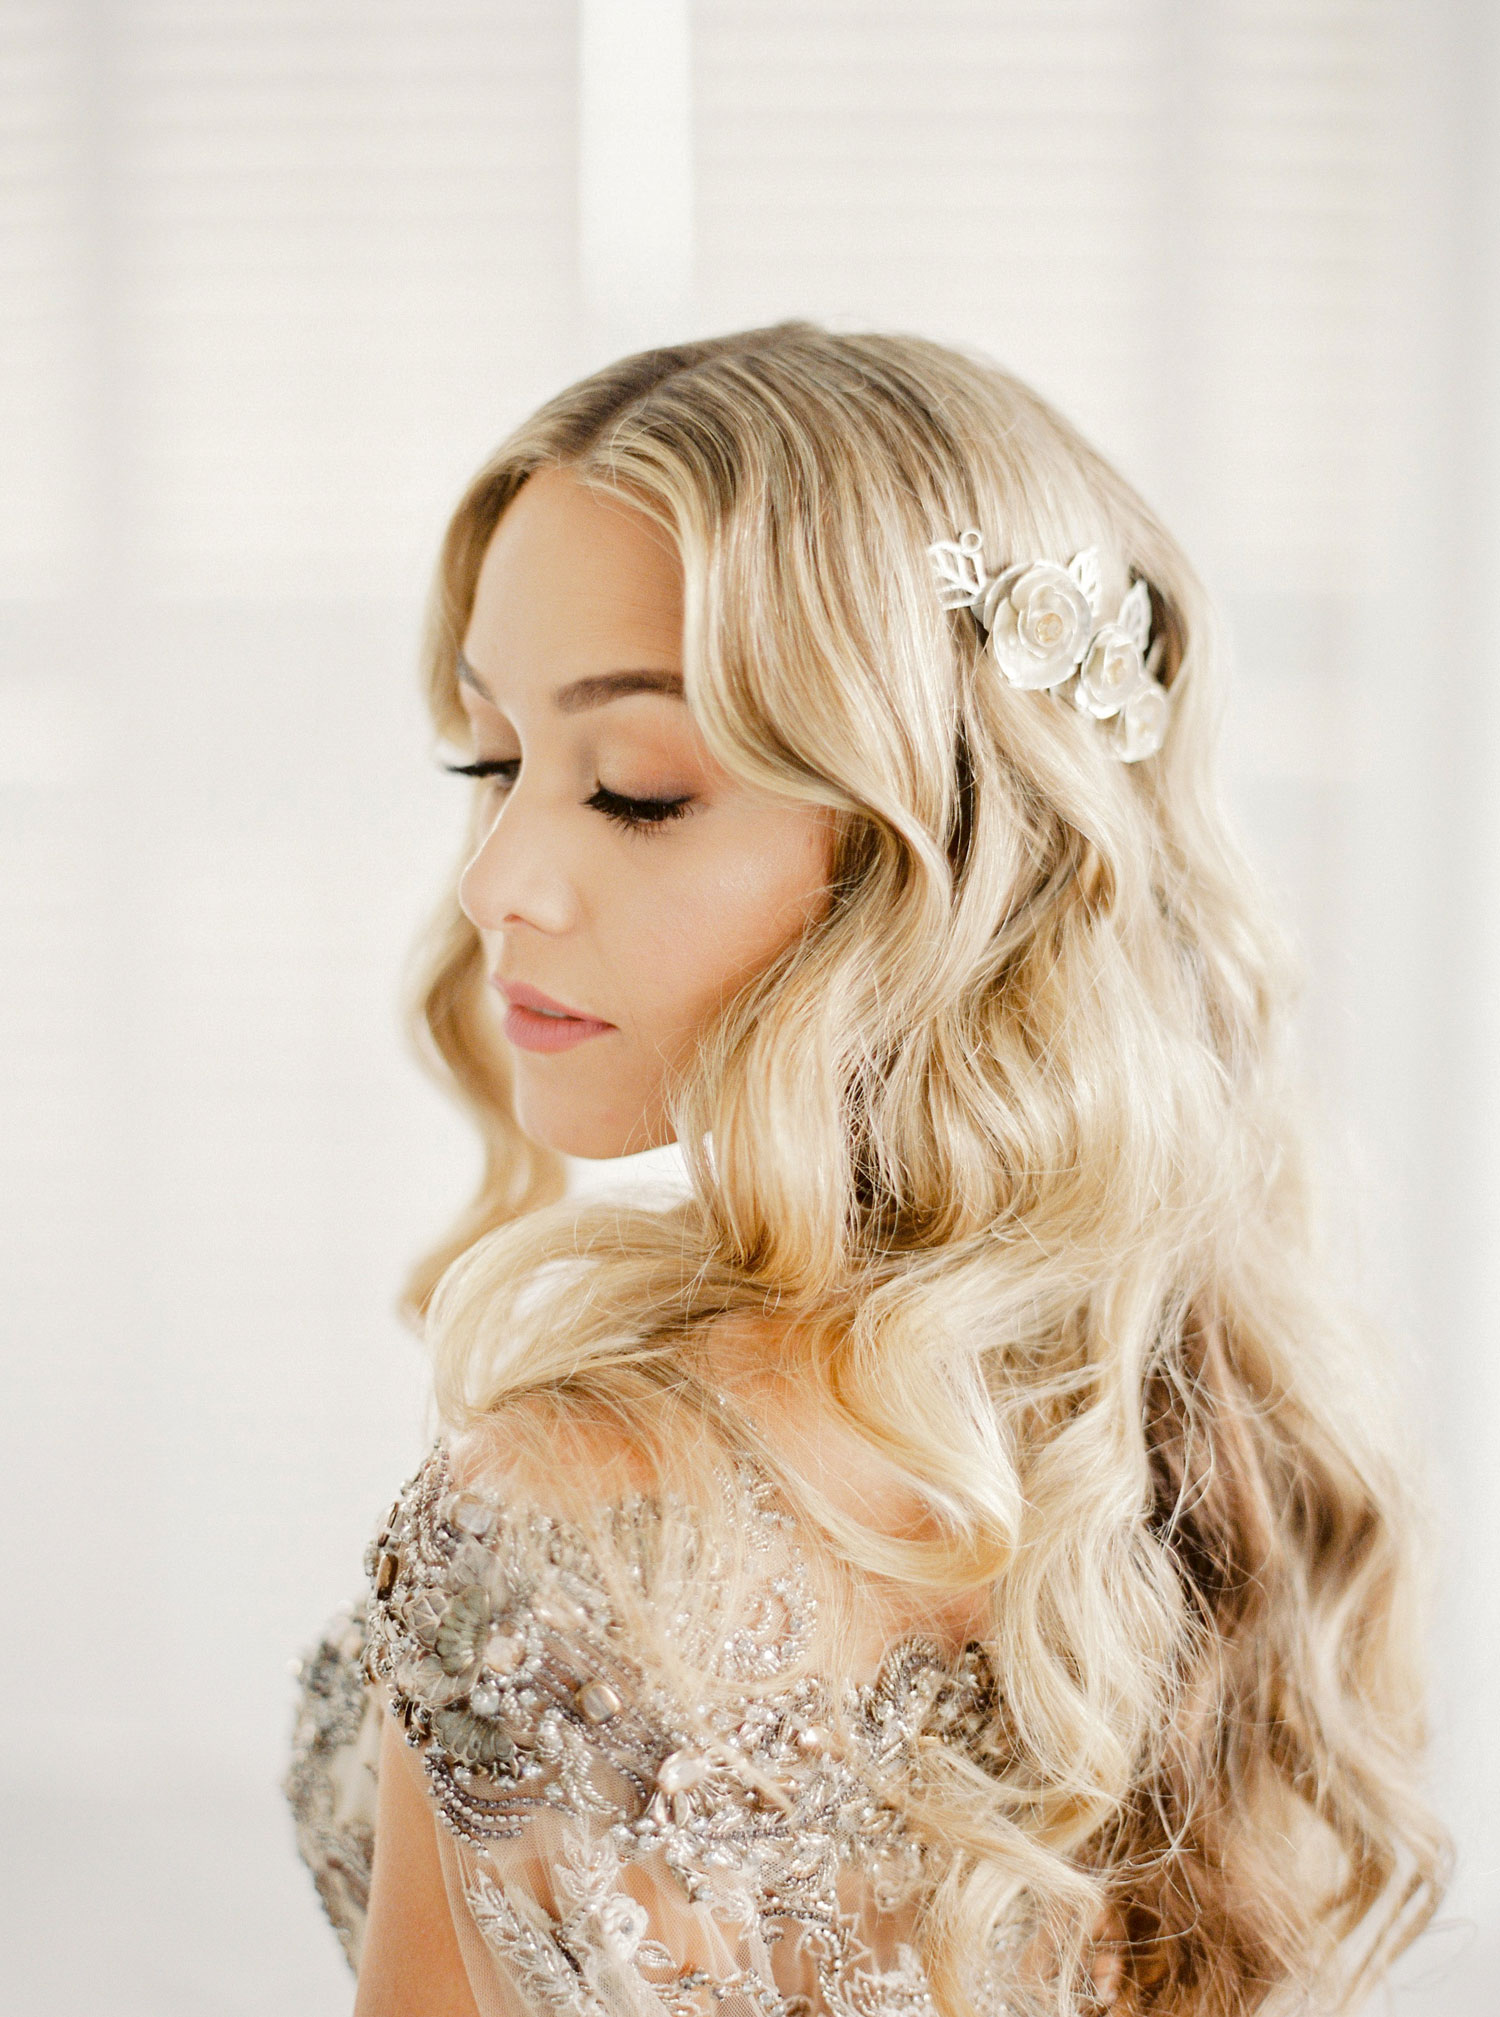 mariana vicente wedding day beauty tips to ensure your big day is perfect